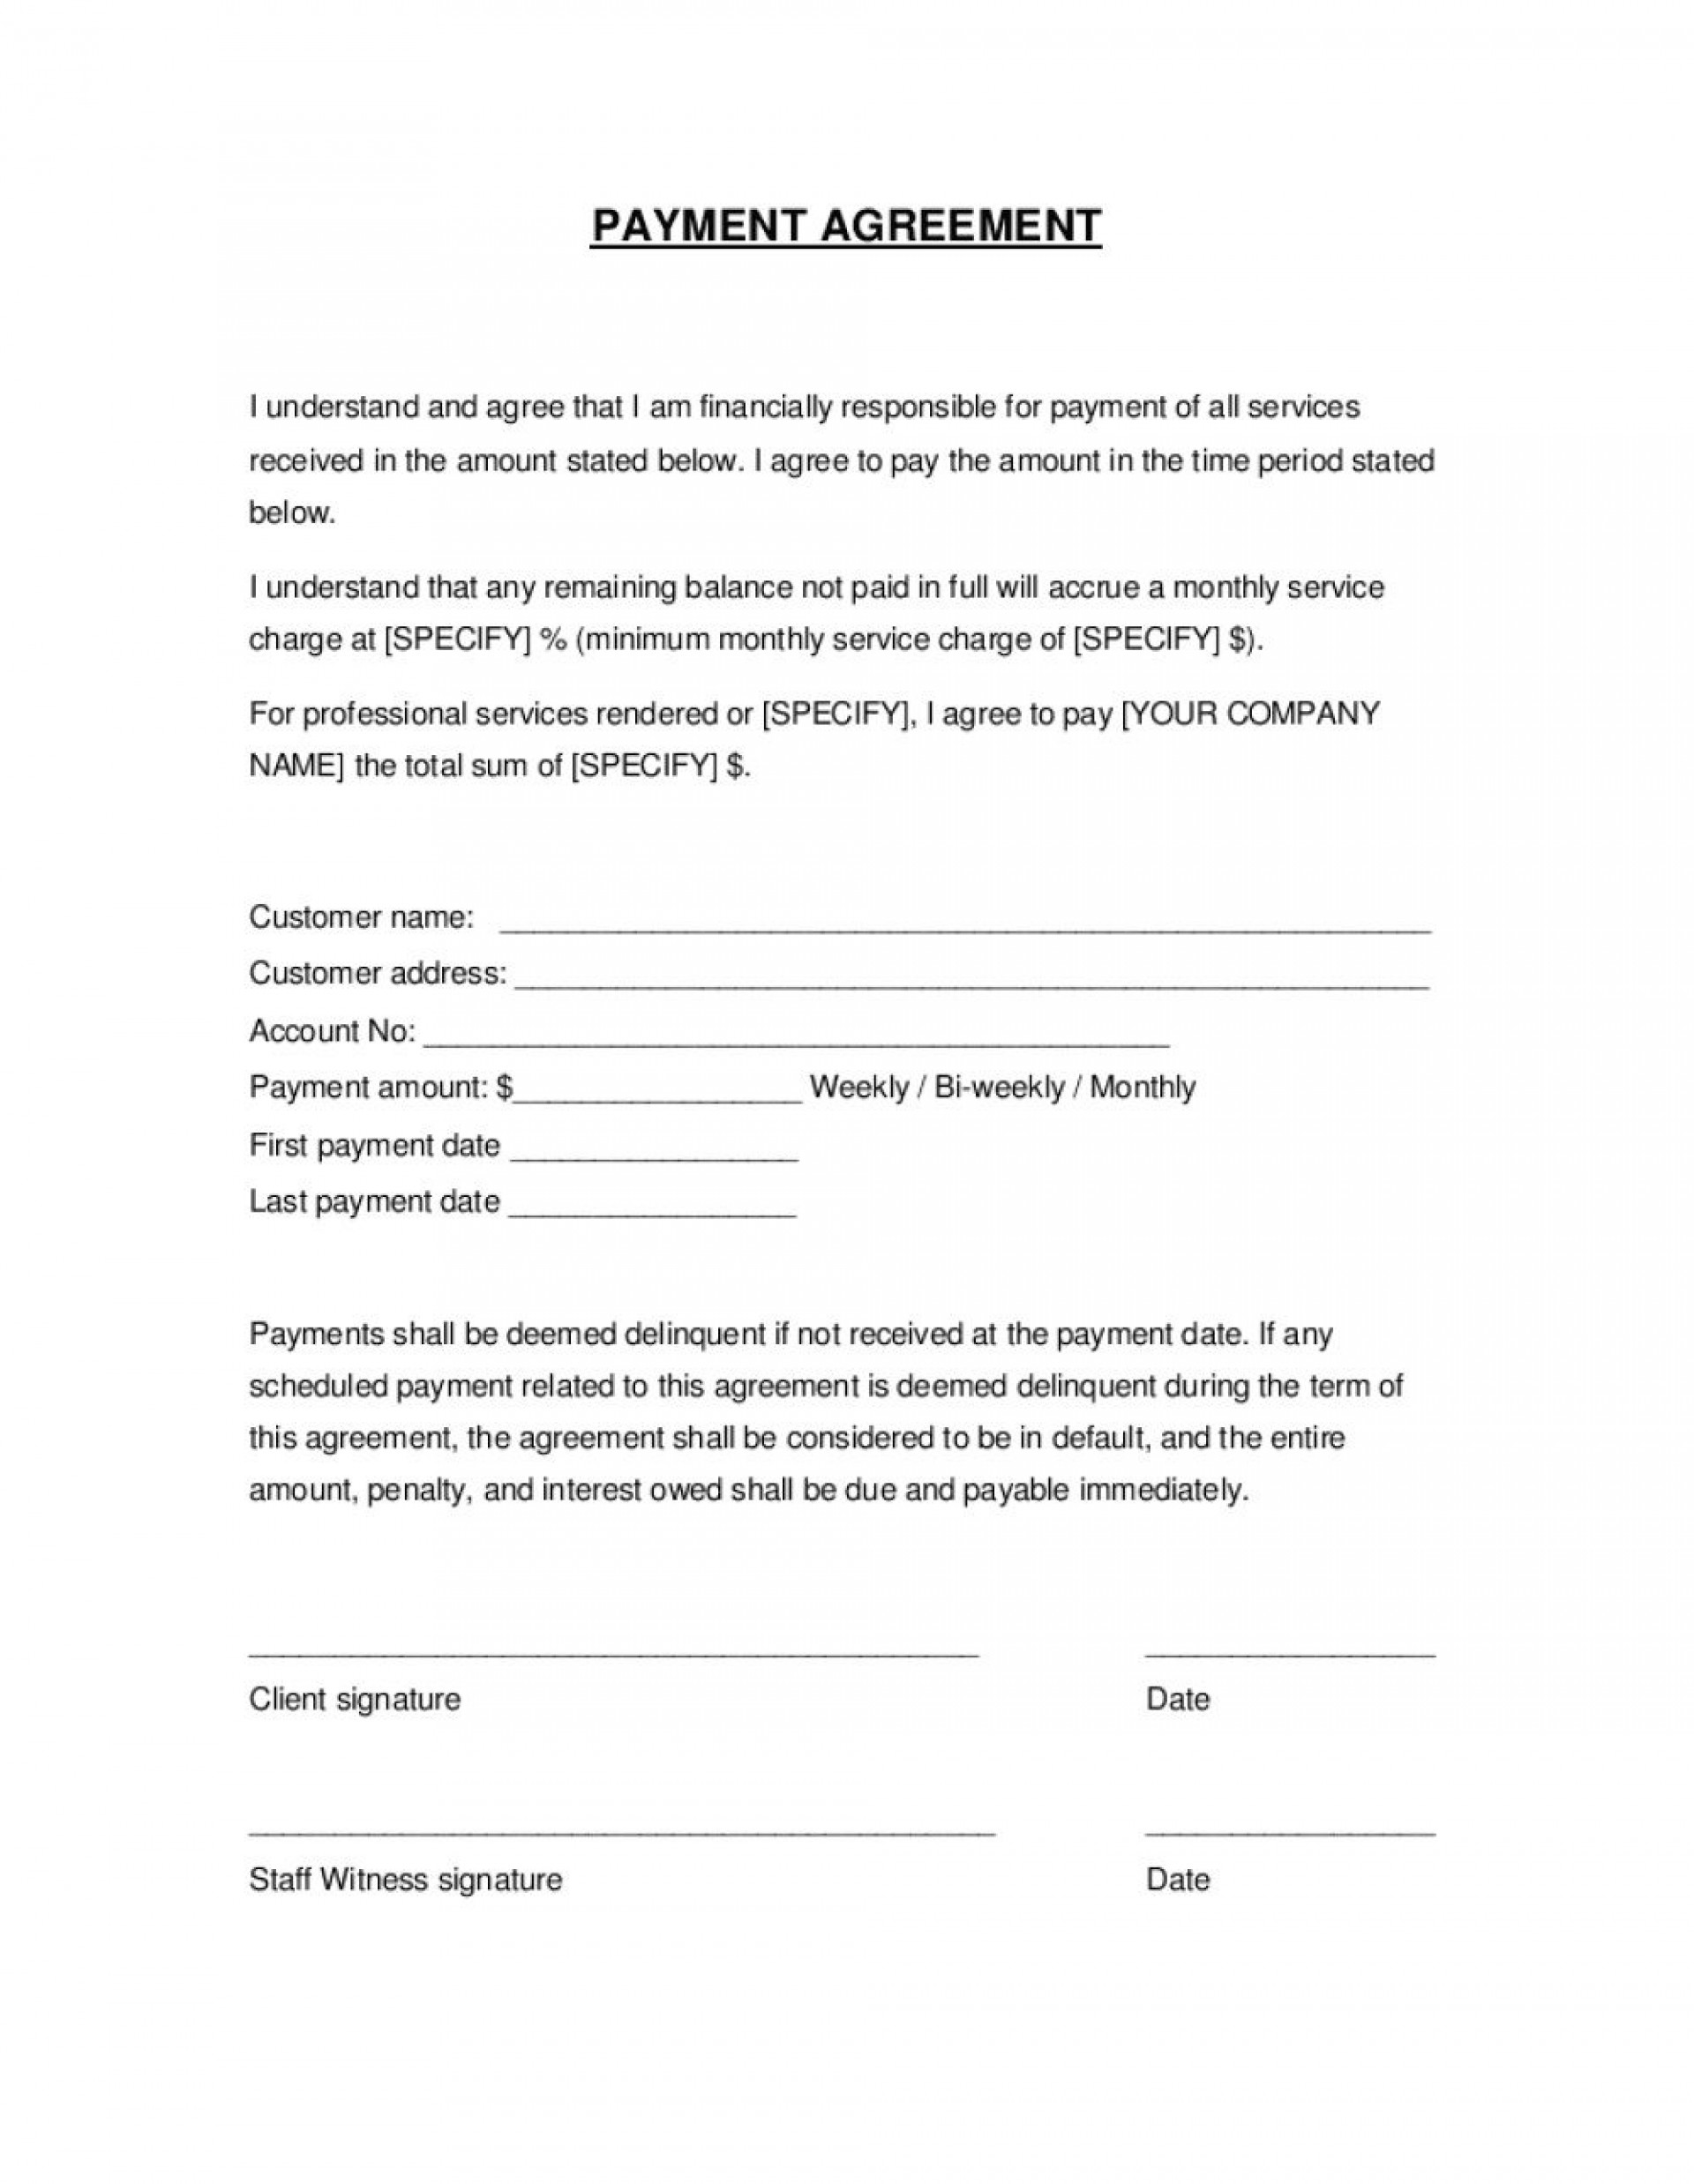 003 Wonderful Installment Payment Contract Template High Definition  Agreement Free Car Word1920